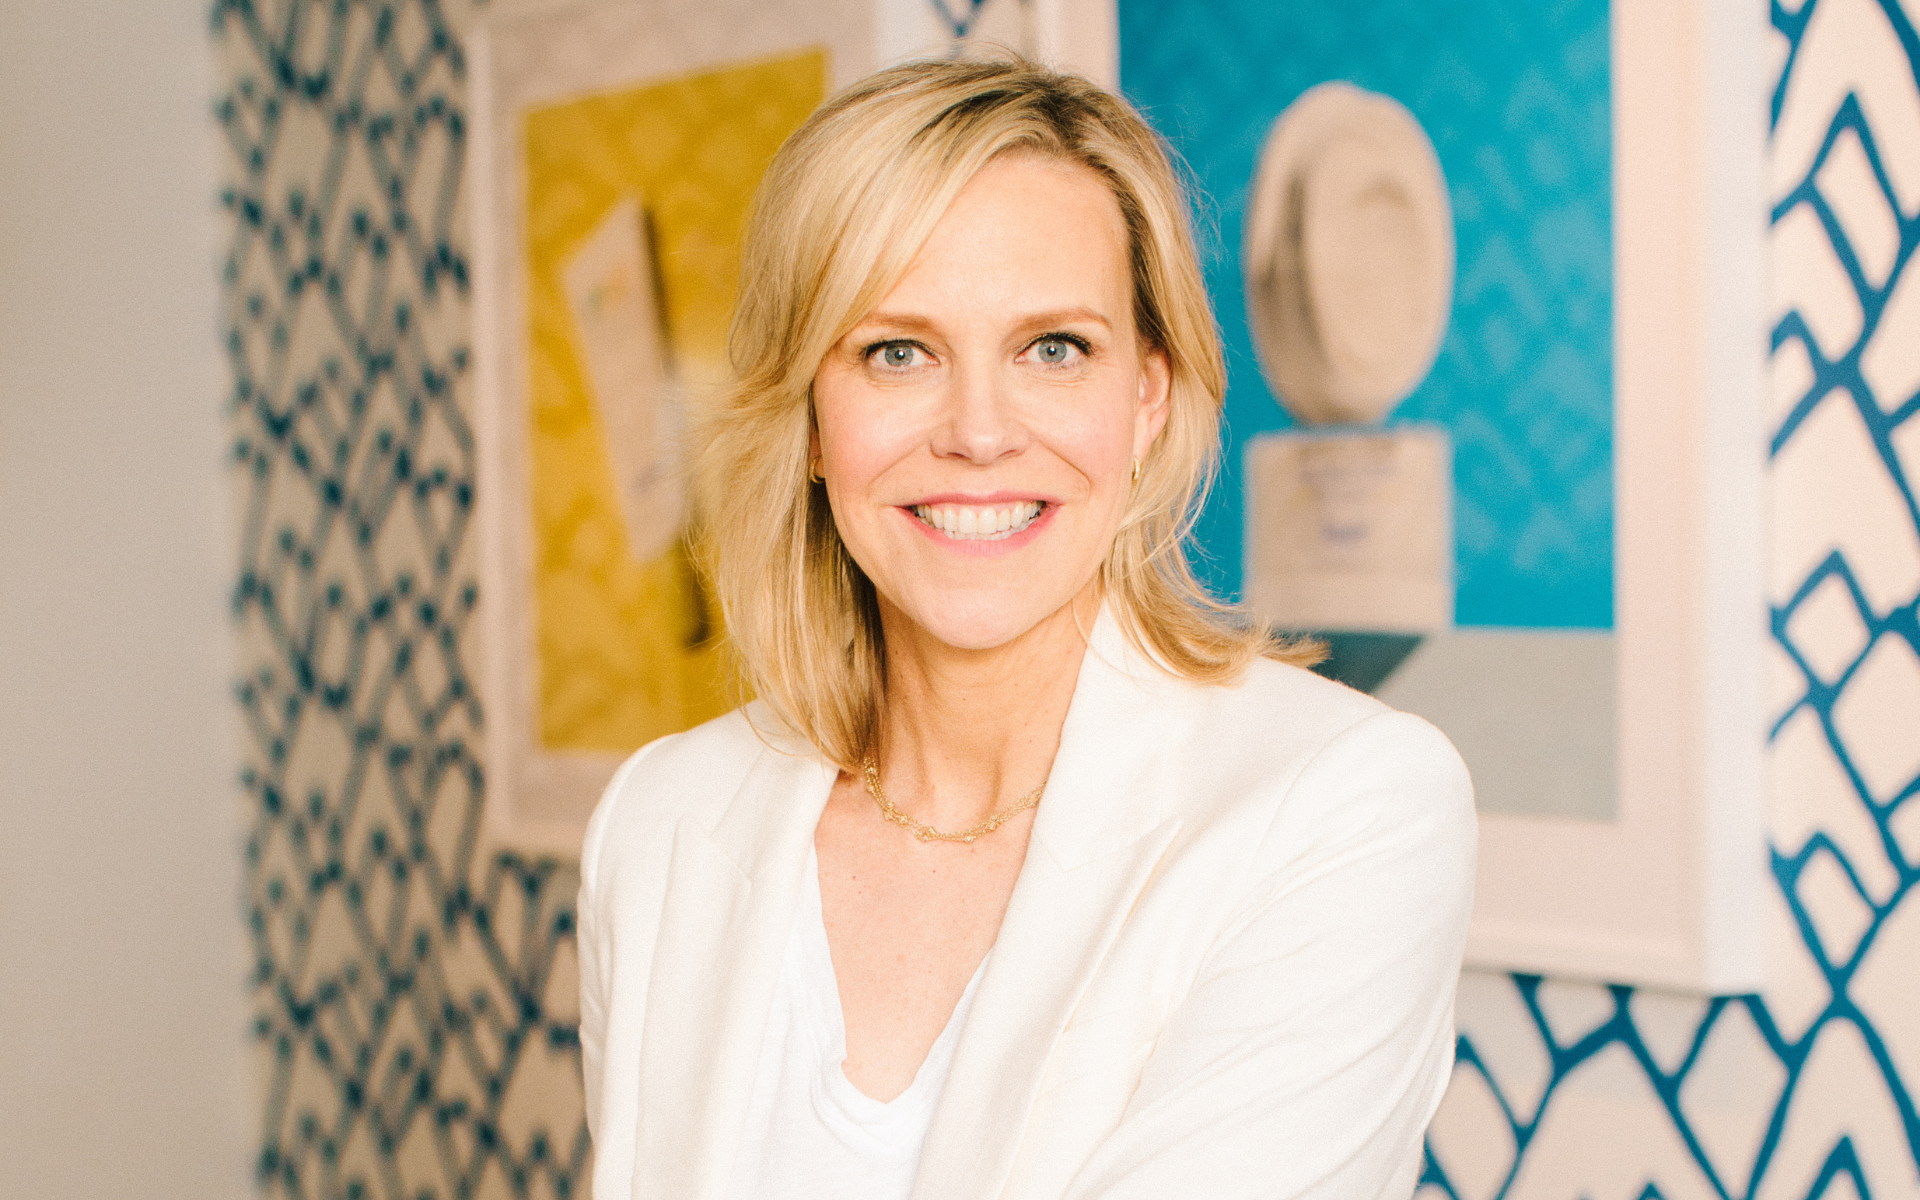 Supergoop Founder Holly Thaggard Reveals the Best Way to Use Sunscreen